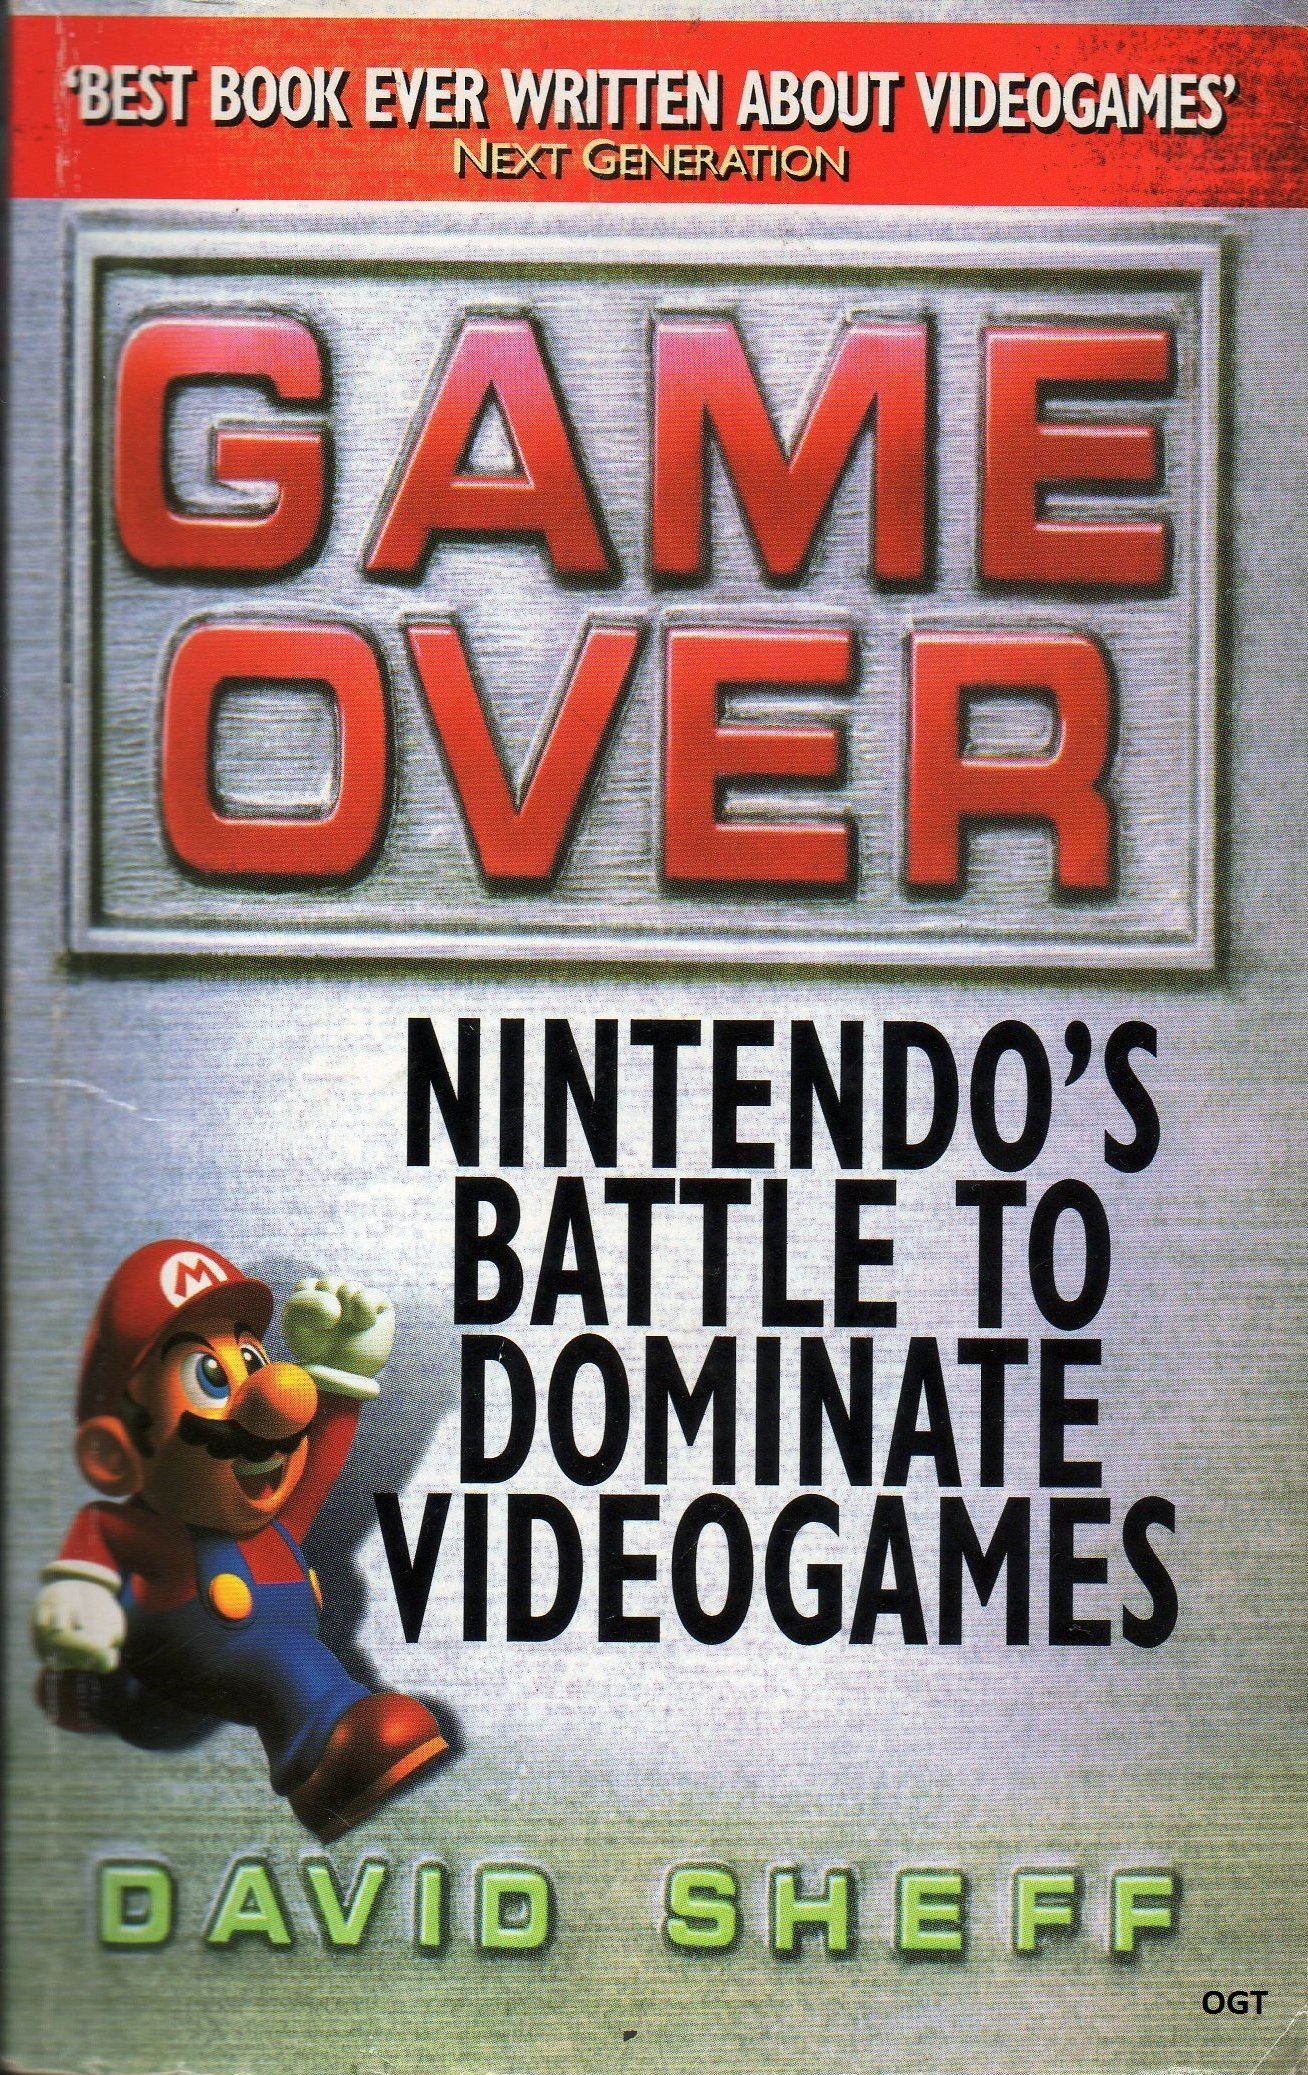 Case Study - Video Games